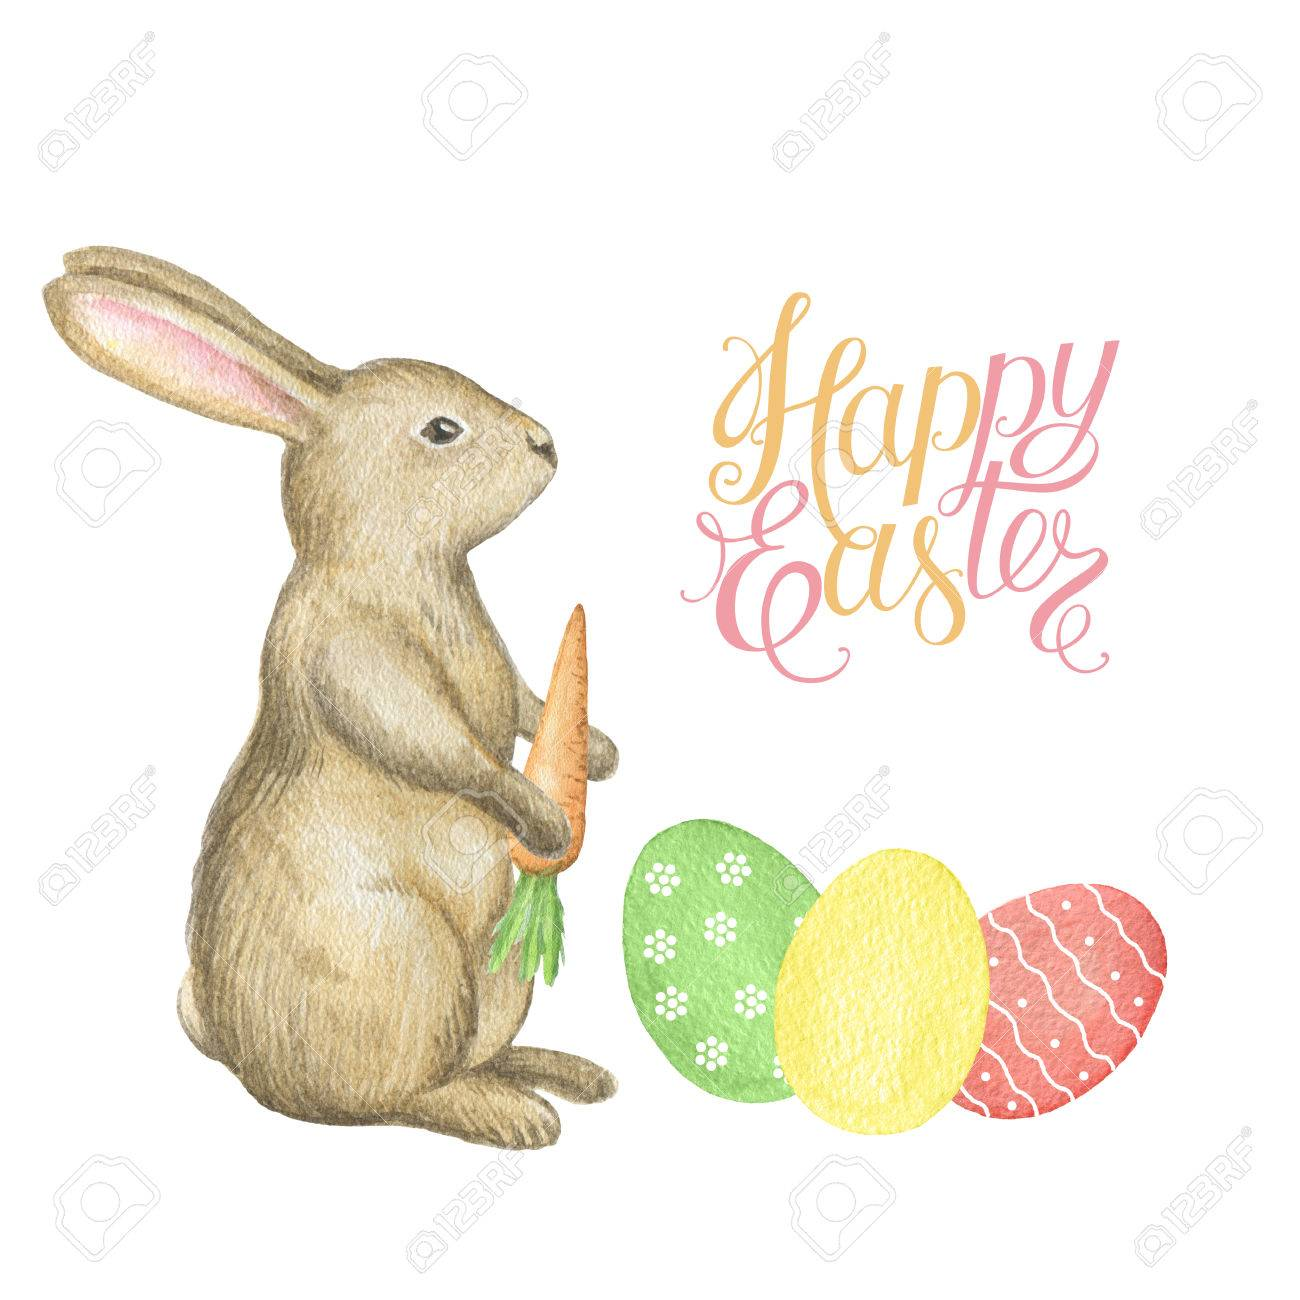 Happy easter watercolor rabbit eggs and a letter template for happy easter watercolor rabbit eggs and a letter template for greeting cards and invitations spiritdancerdesigns